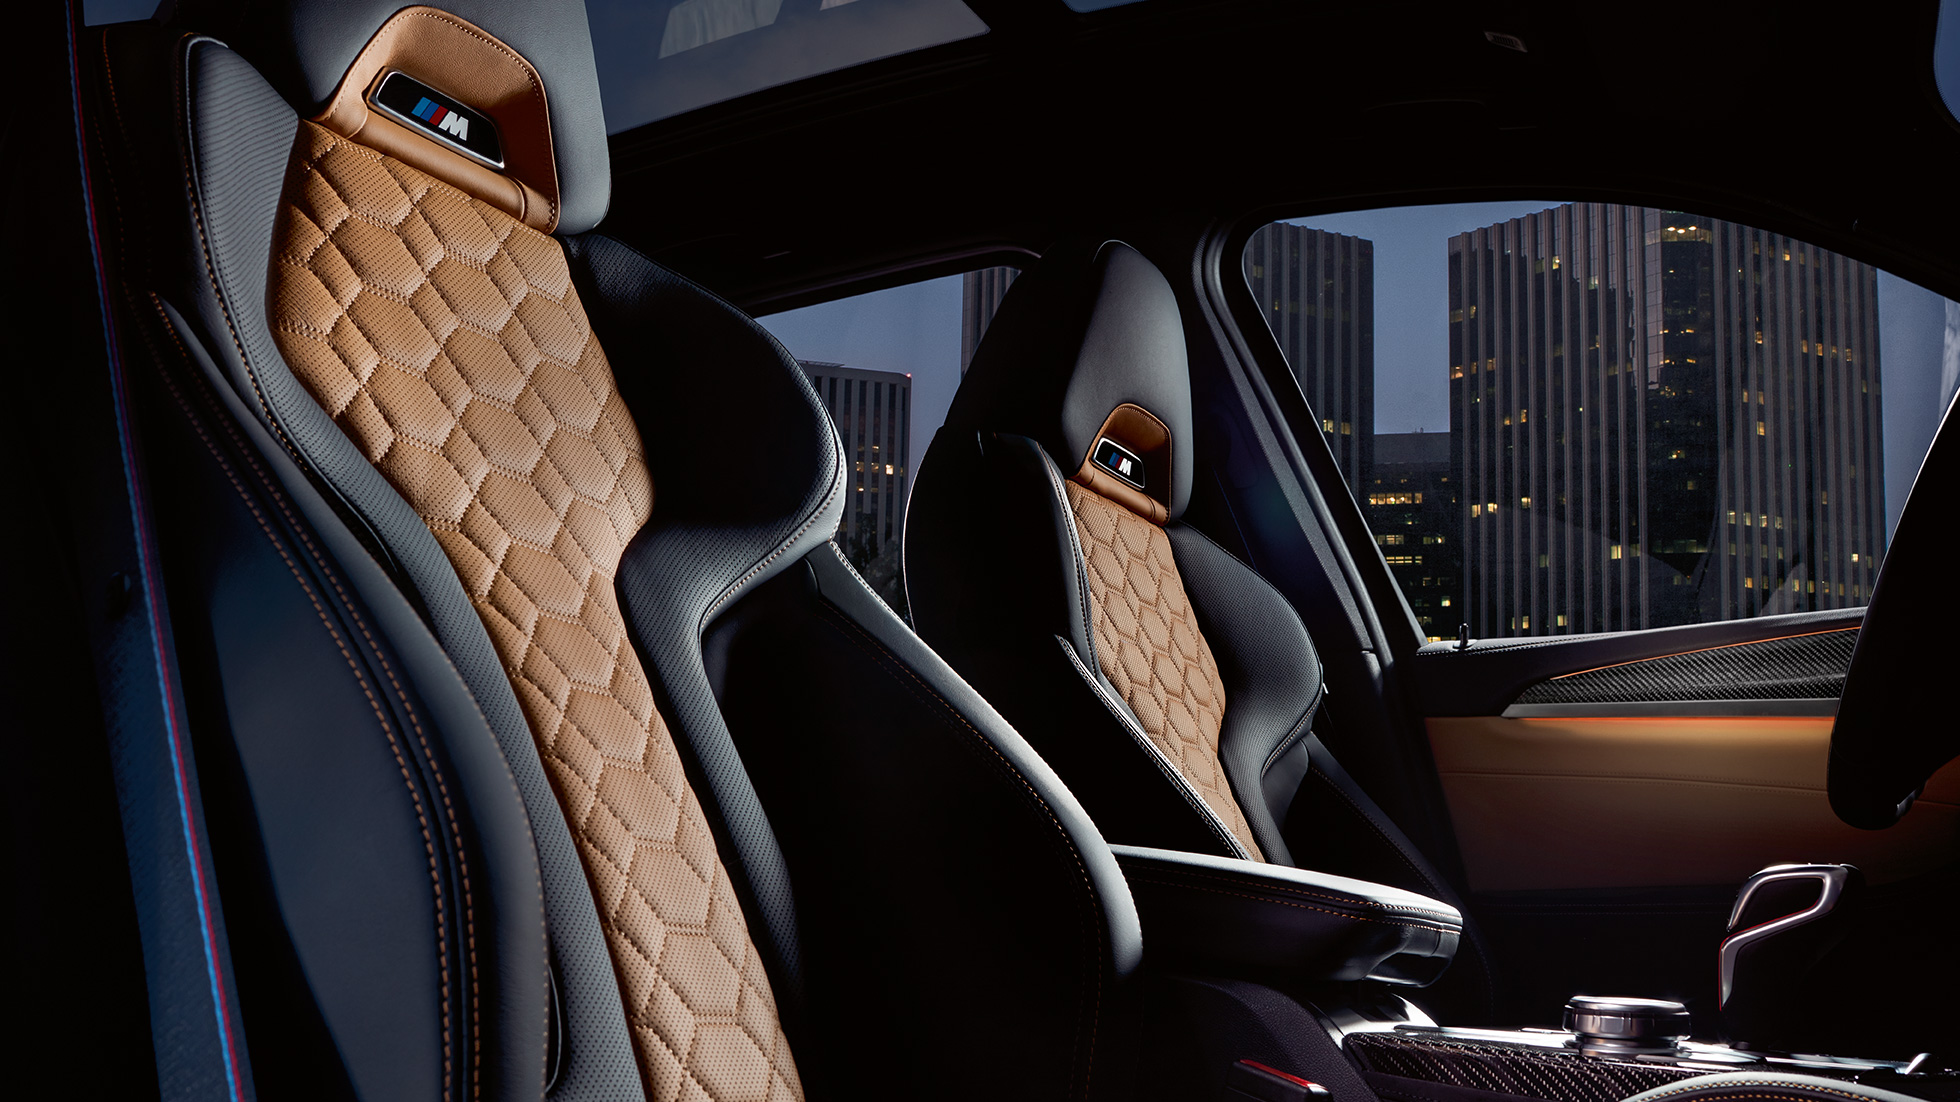 BMW X3 M Competition, interior, M Sport seats in 'Merino' leather with Alcantara.